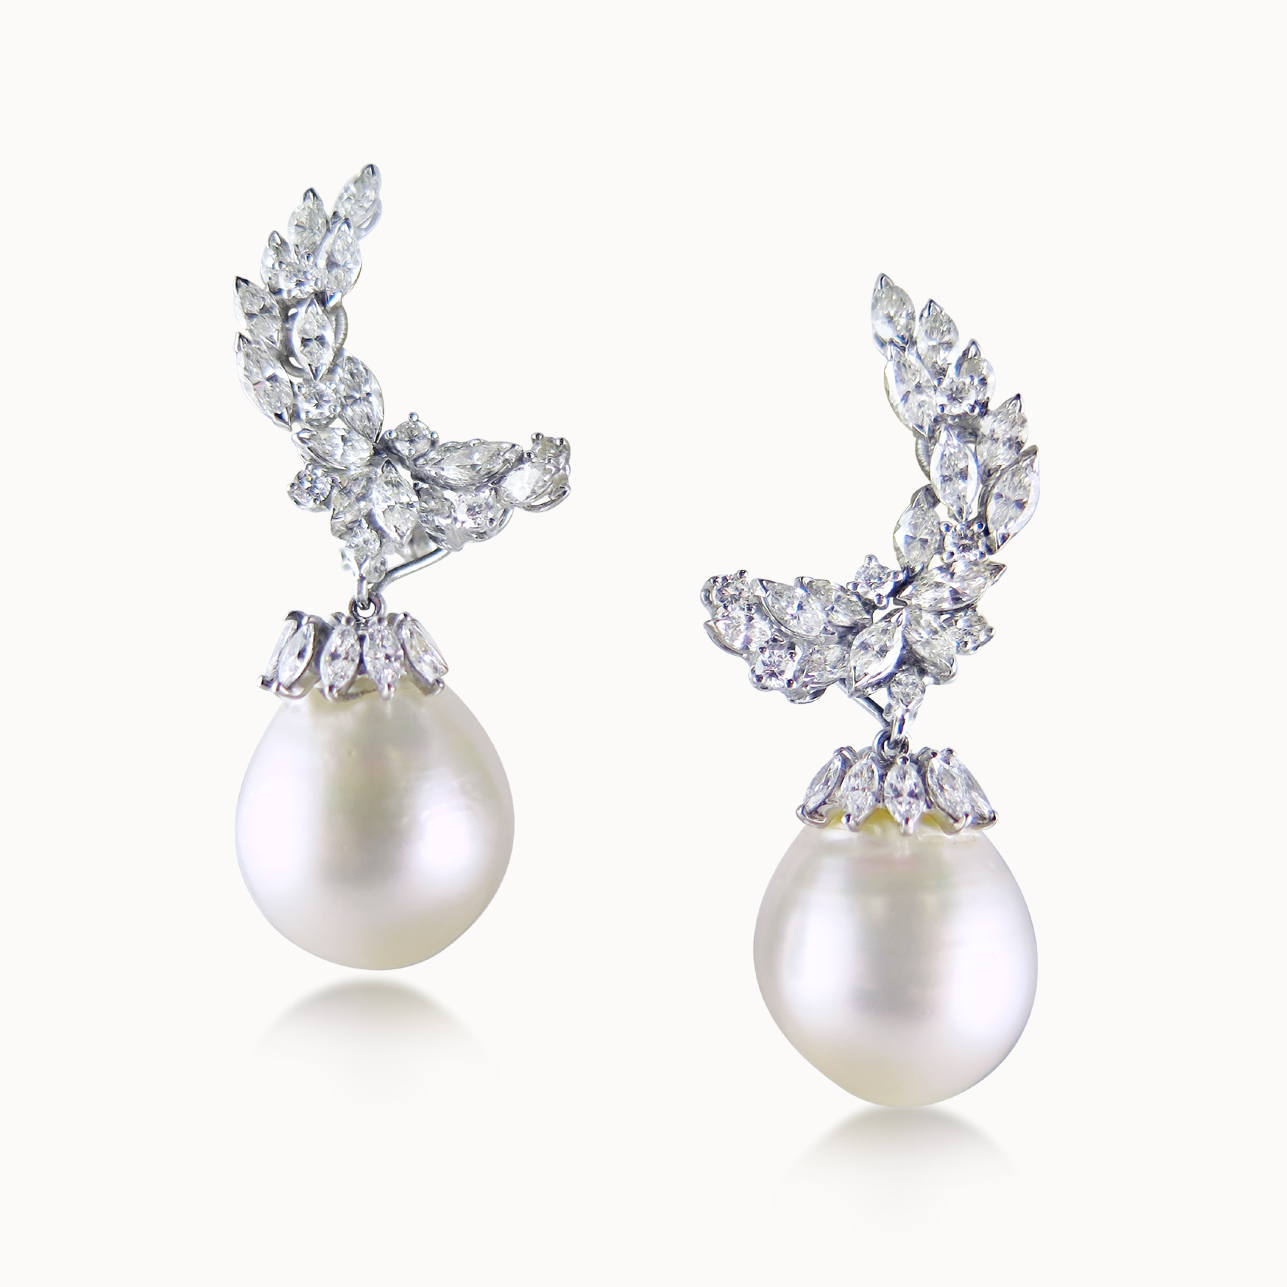 PAIR OF SOUTH SEA PEARL AND DIAMOND EAR PENDANTS